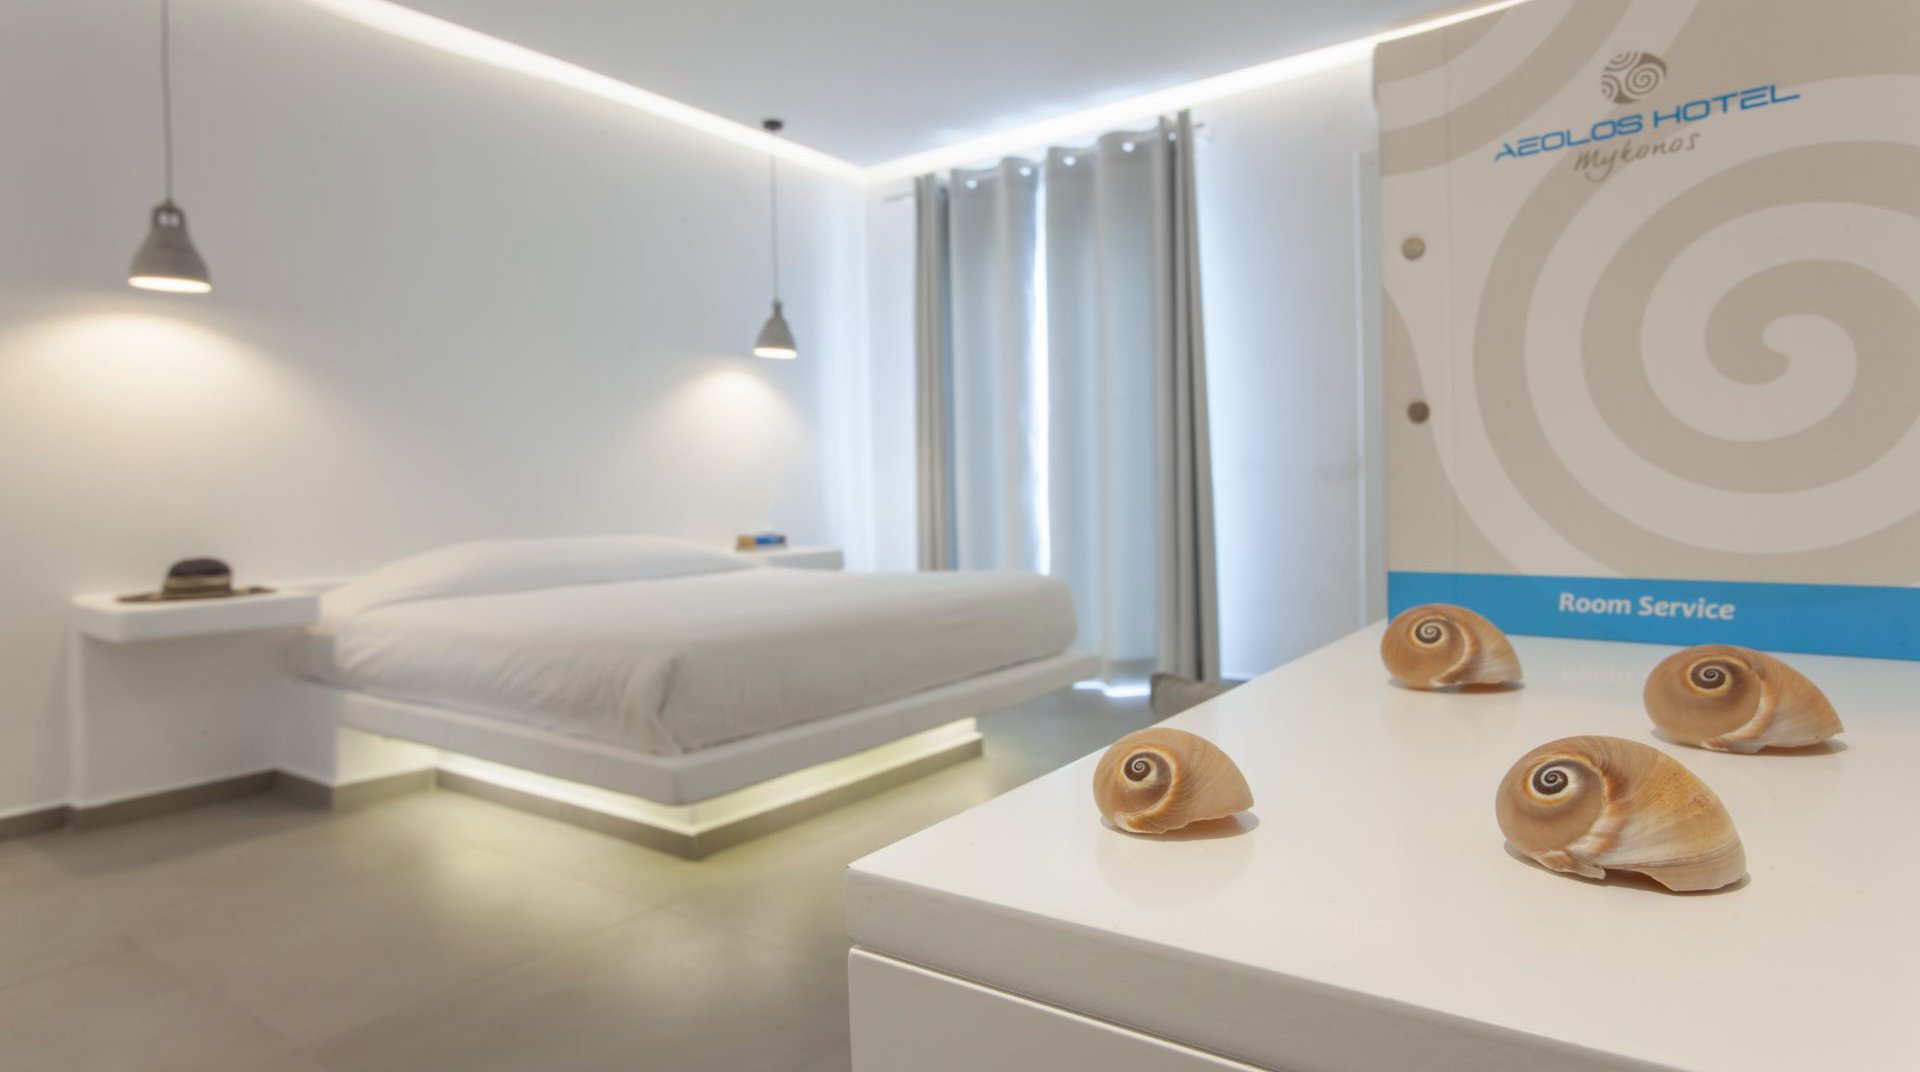 The modern decoration of the room